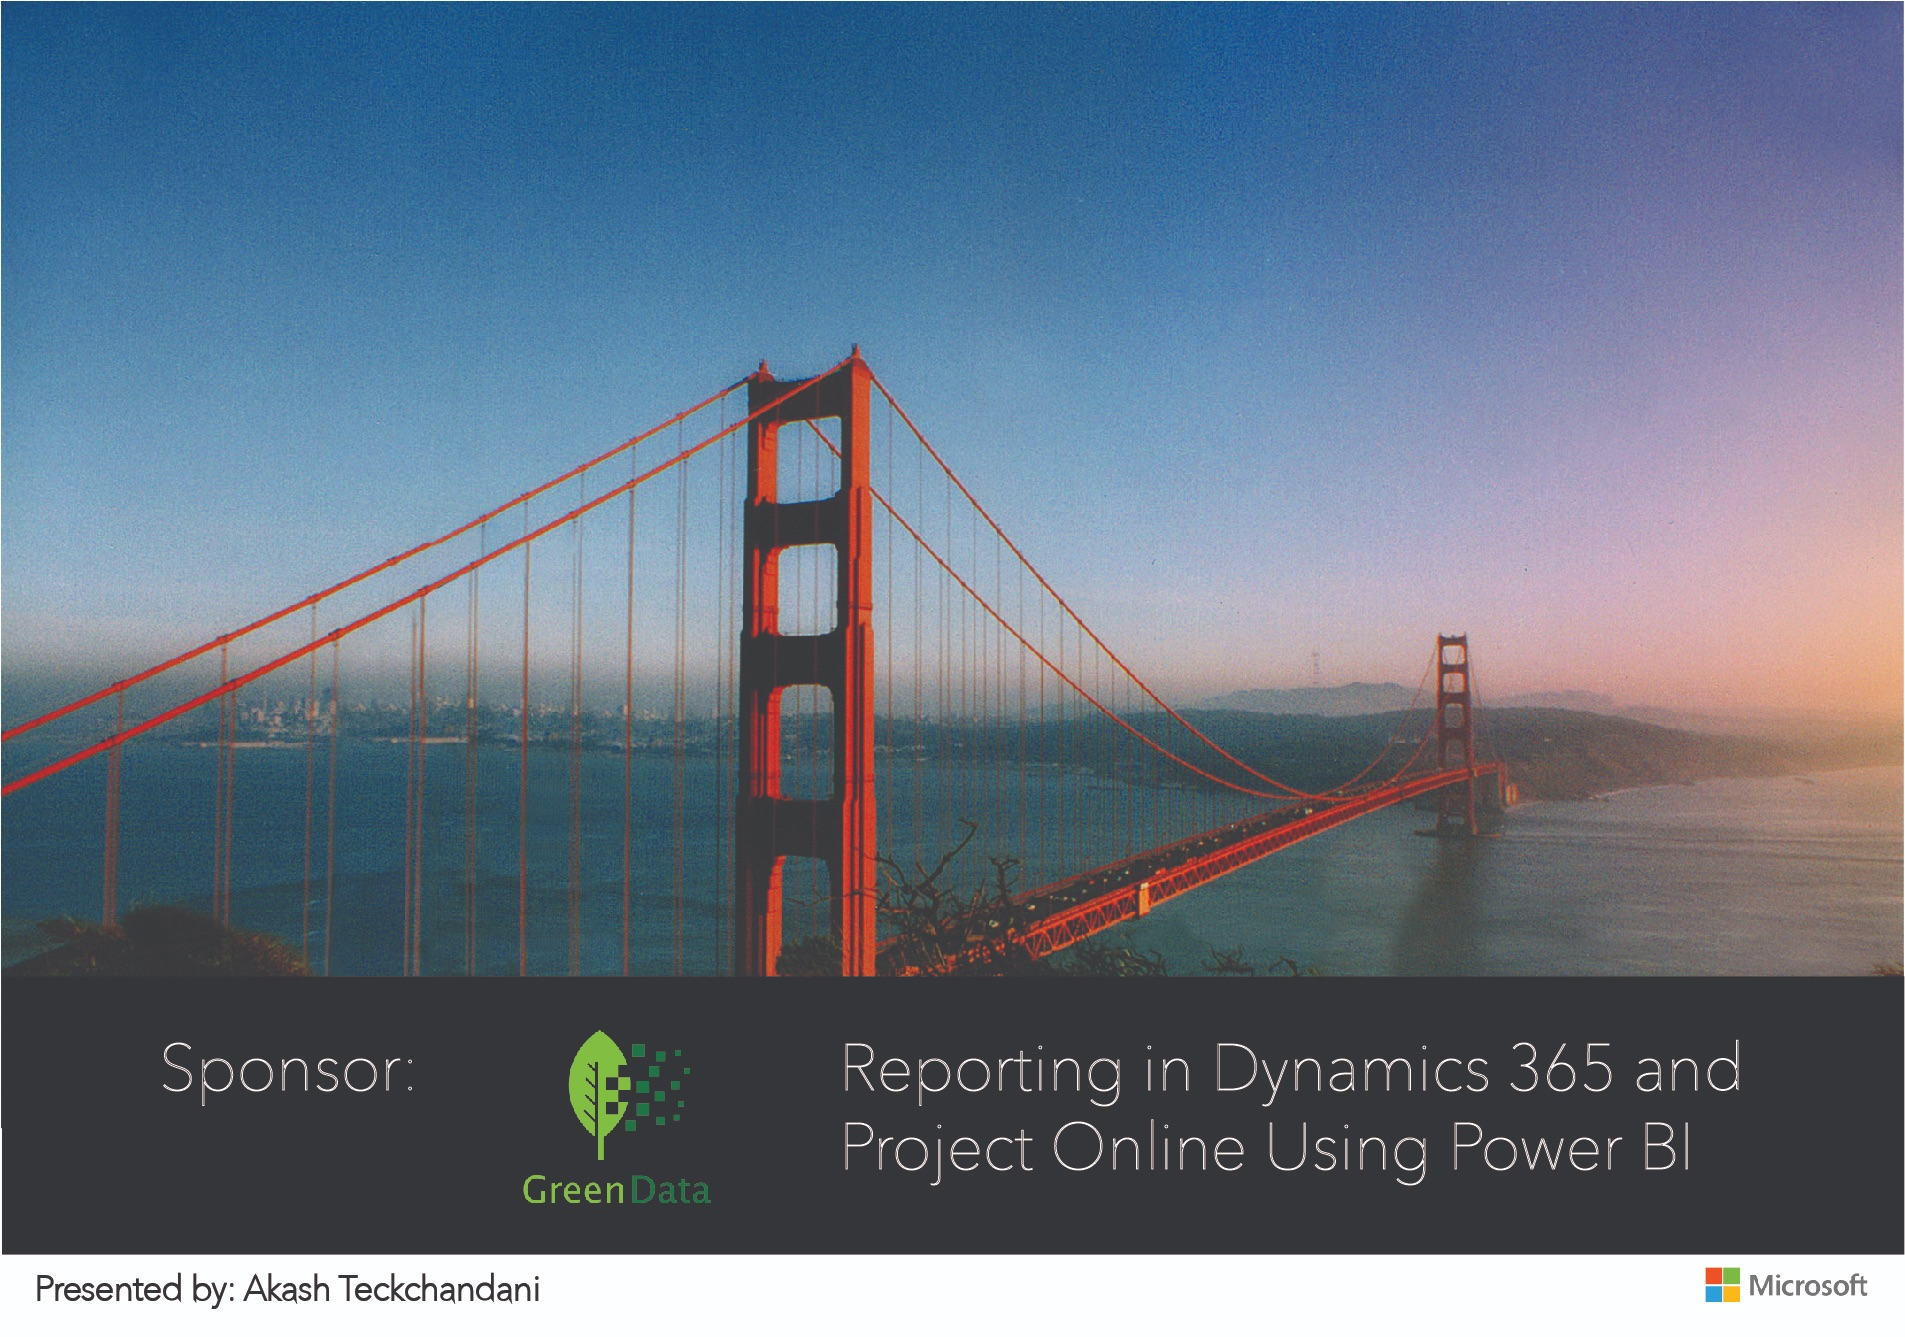 Reporting in Dynamics 365 and Project Online Using Power BI presented by Akash Teckchandani